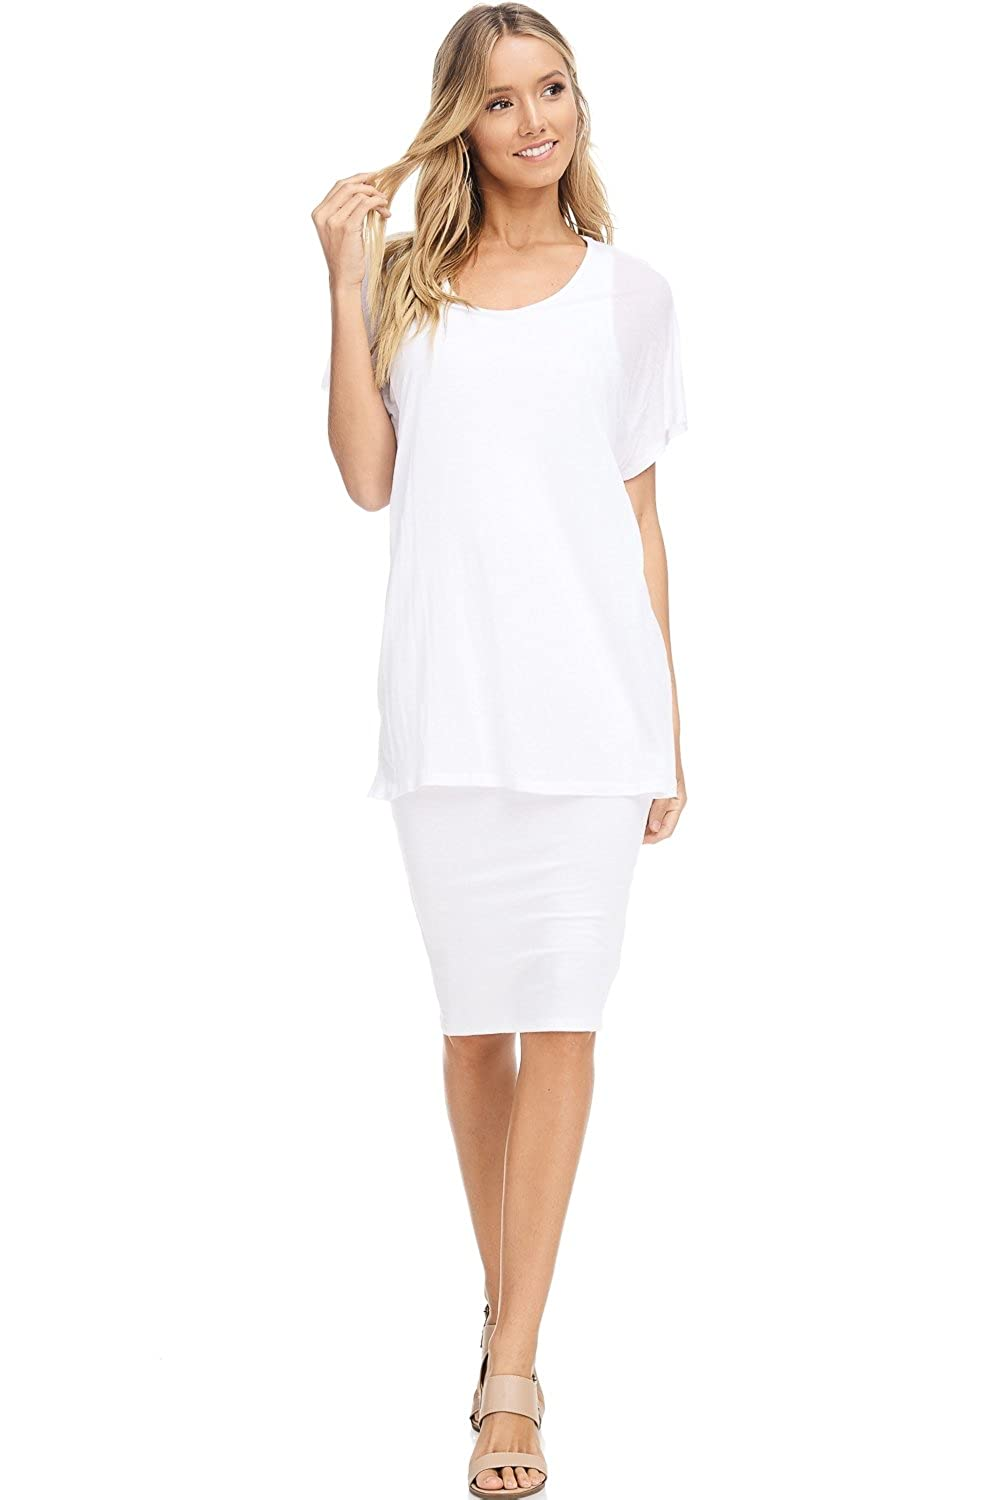 0d81bbfaa6 DETAILS  Lightweight combo jersey knit (regular jersey and ribbed) midi  dress with a top overlay. FABRIC CONTENT  Self  96% Rayon